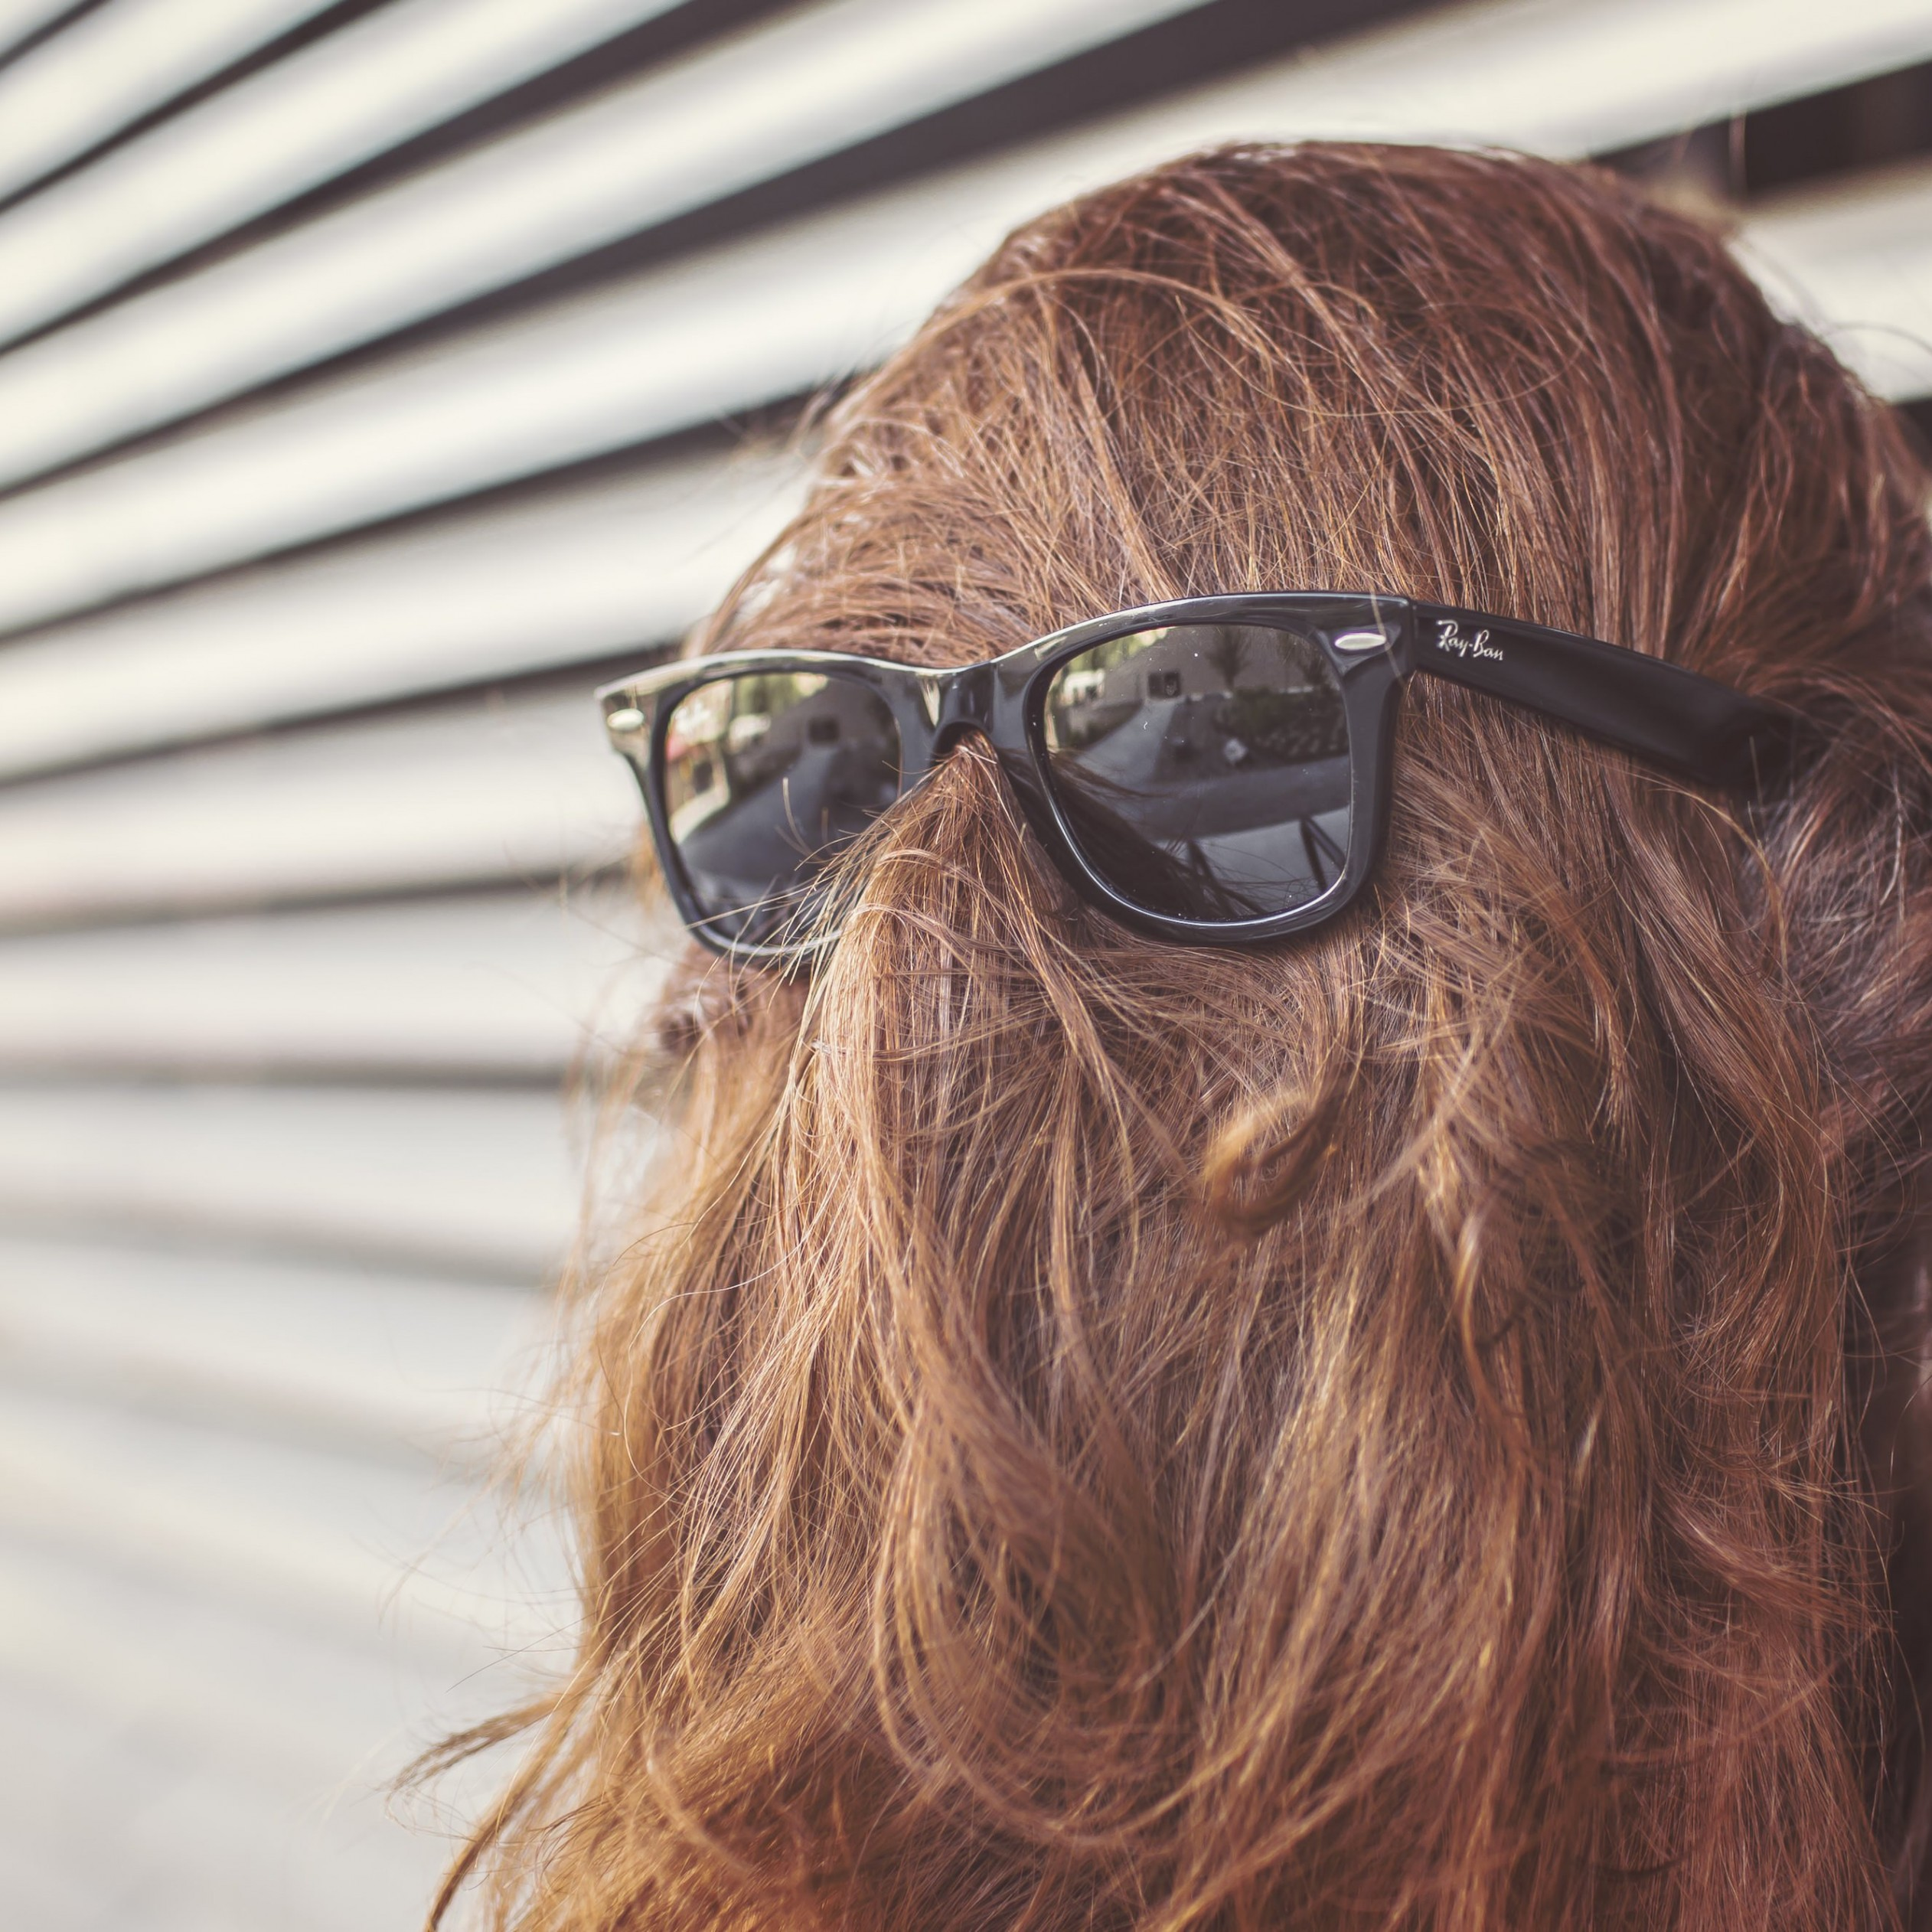 Chewbacca Girl Wallpaper for Apple iPad Air